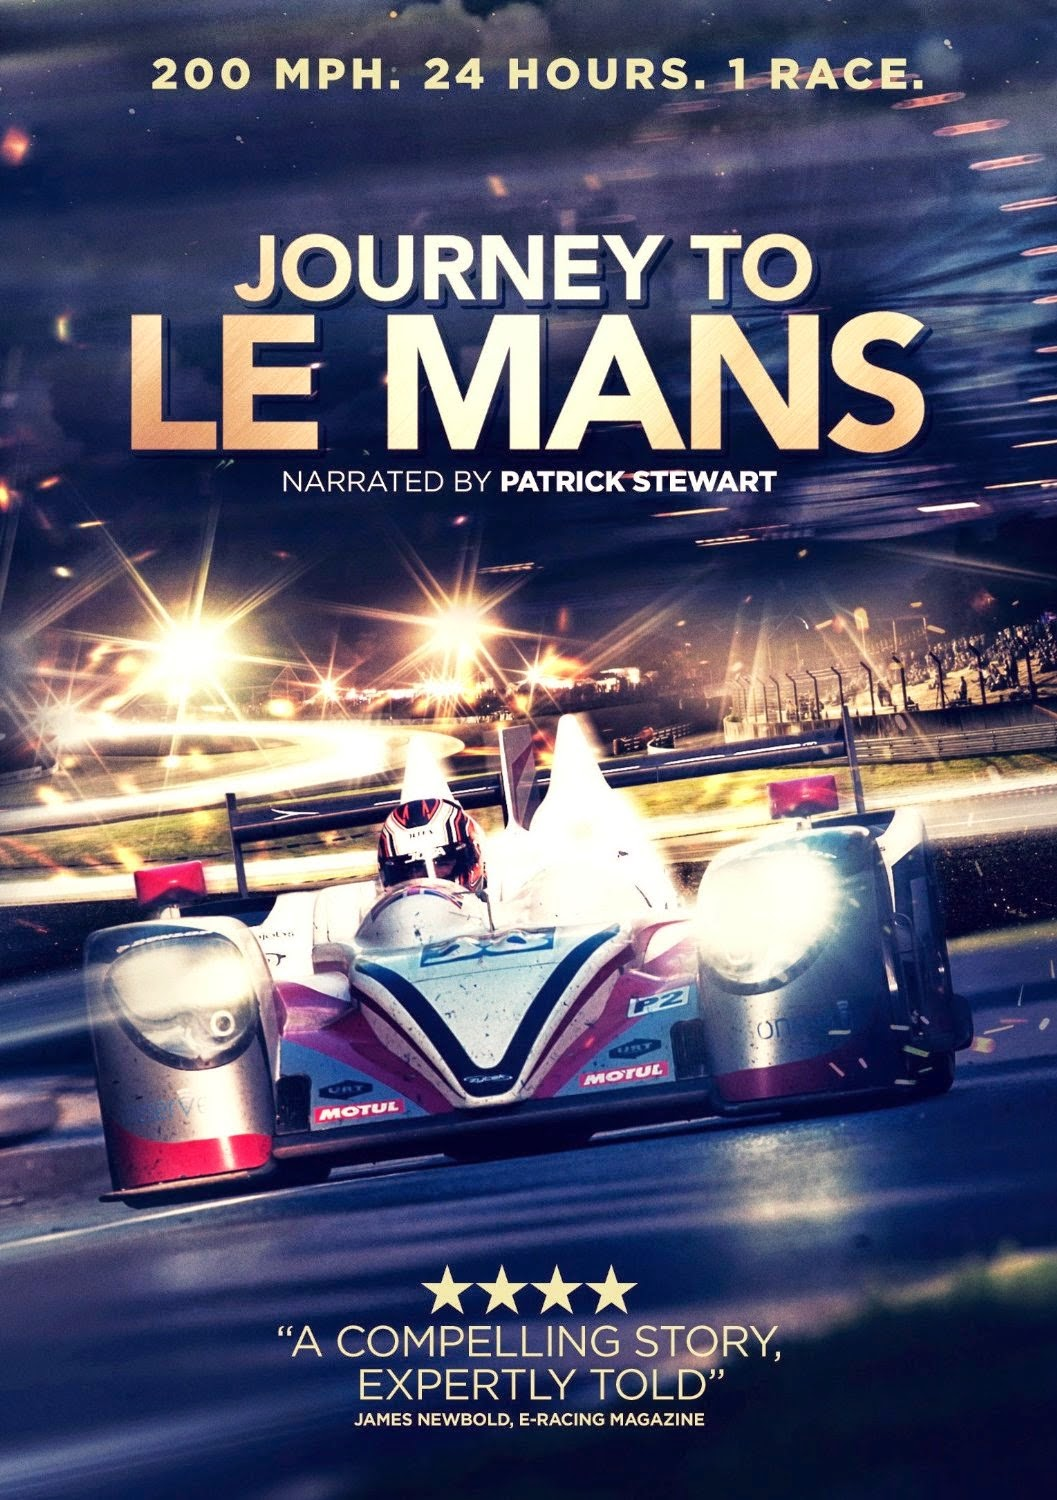 Journey to Le Mans 2014